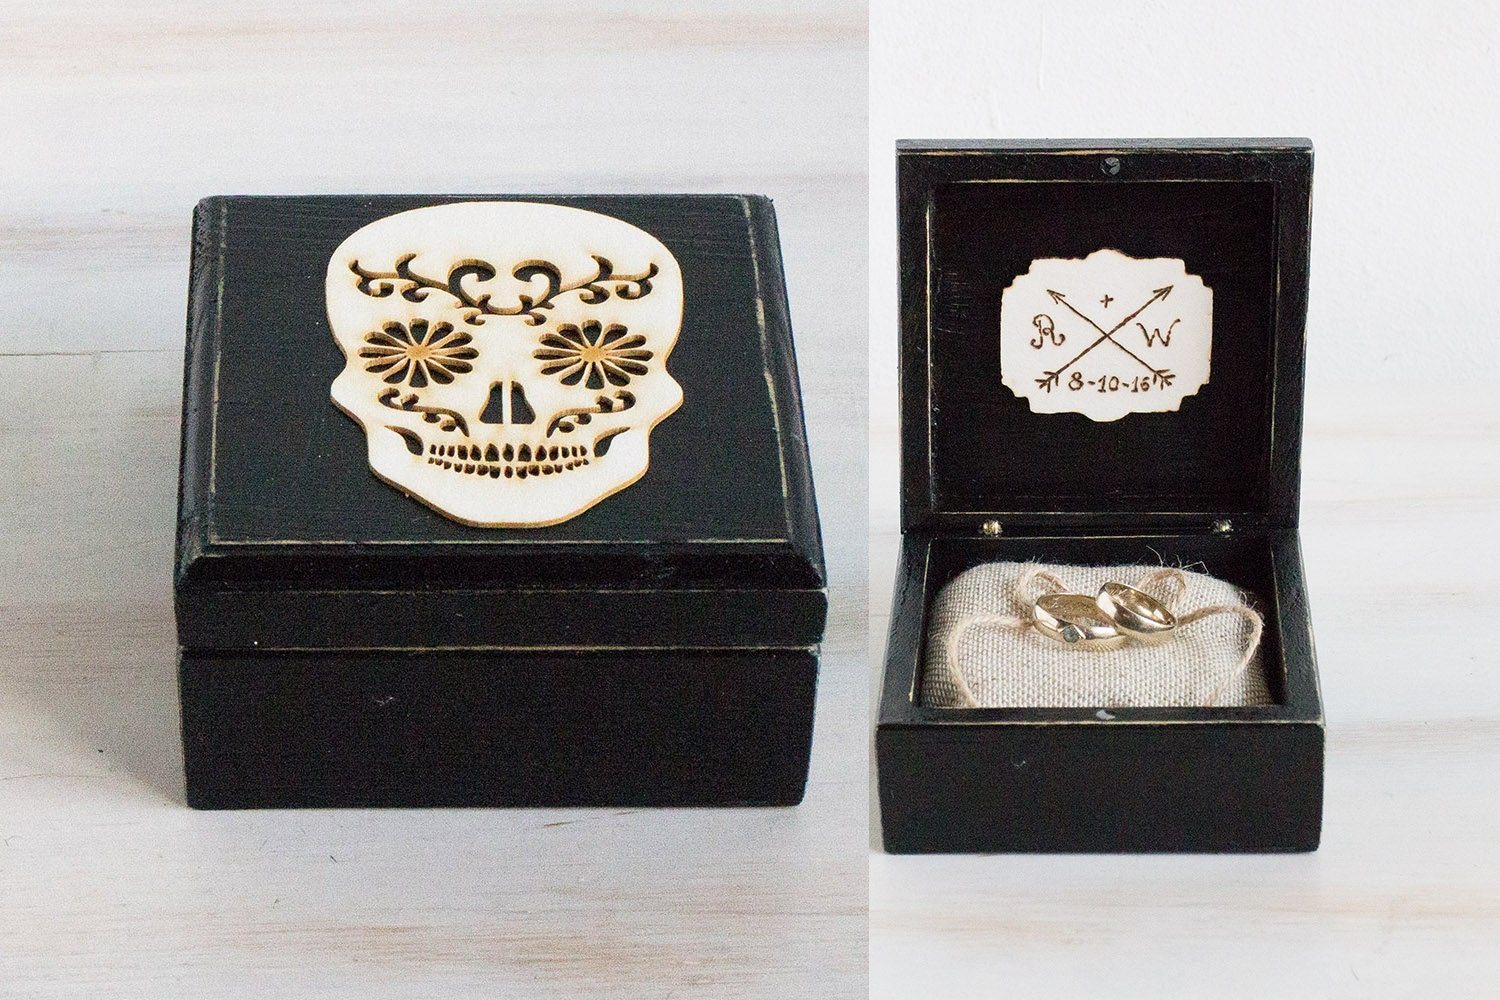 skull wedding ring skull wedding ring Mexican Skull Wedding Box Ring Bearer Box Black Wedding Ring Box Halloween Wedding Engagement Ring Box Ring Holder Day of the Dead Ring Box